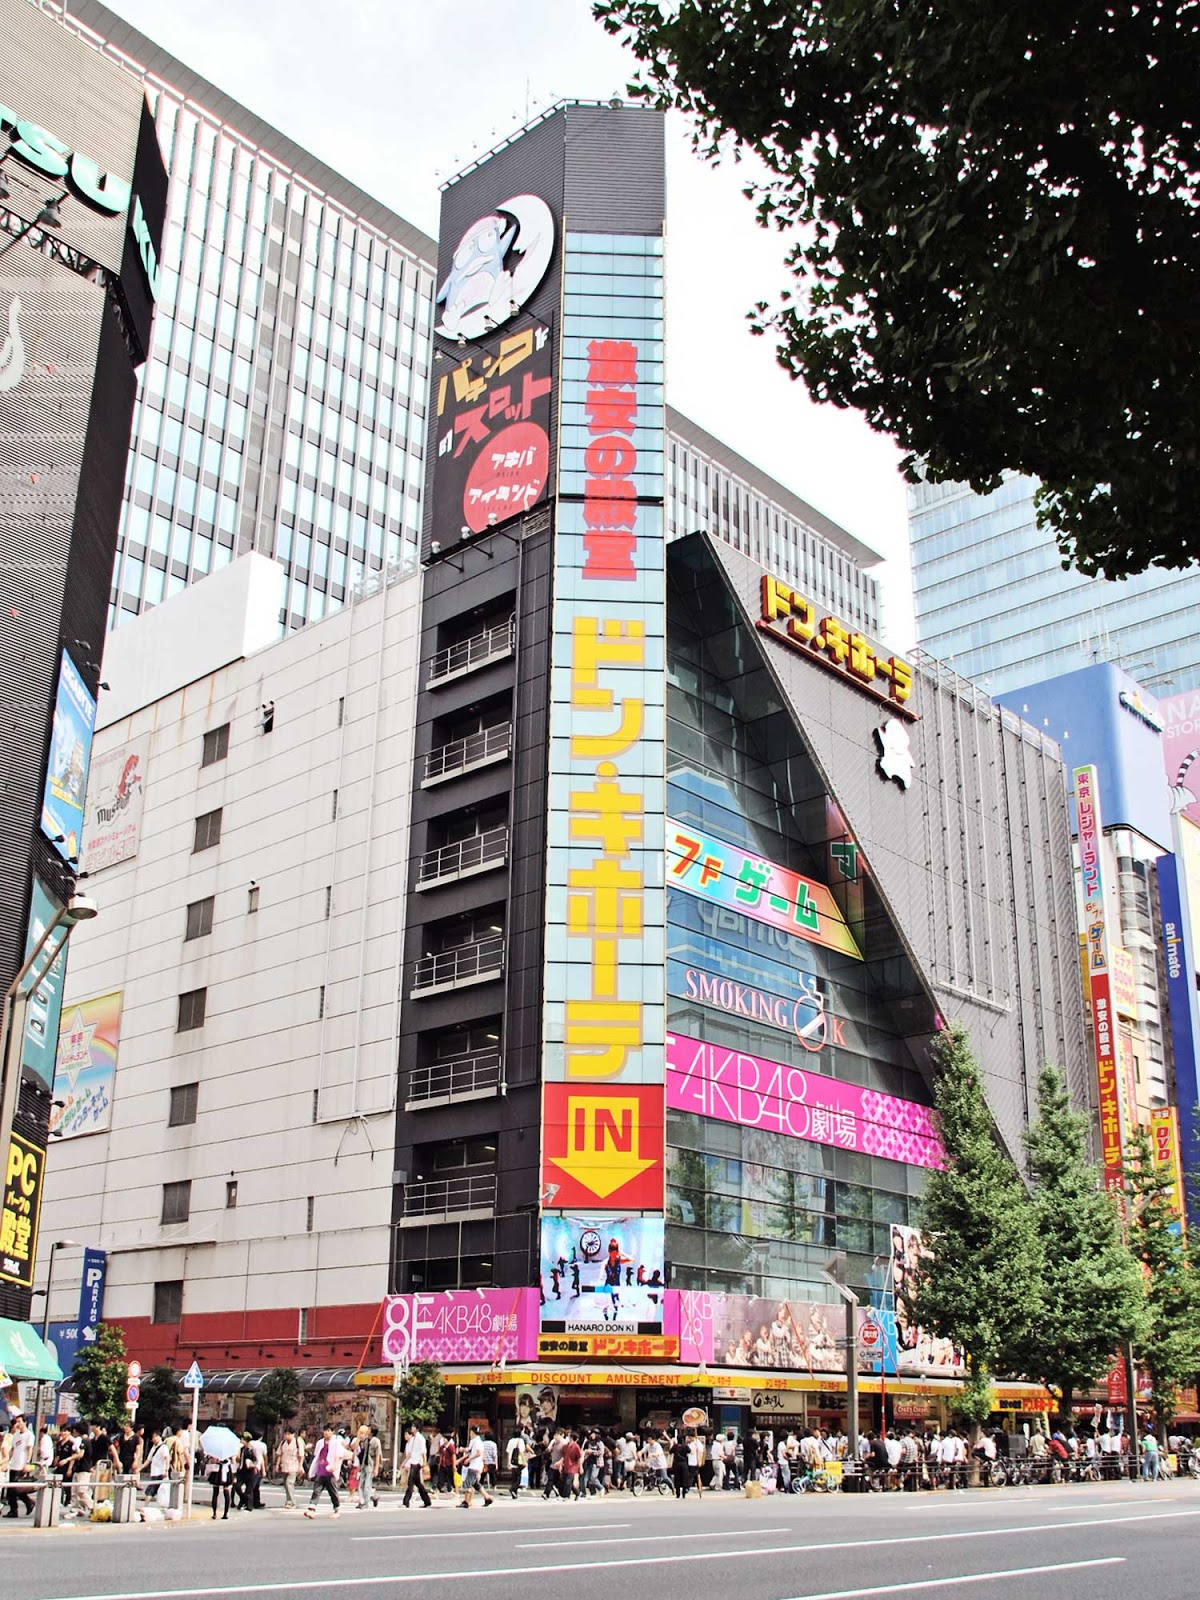 Don Quijote in Akihabara with AKB48 Theatre